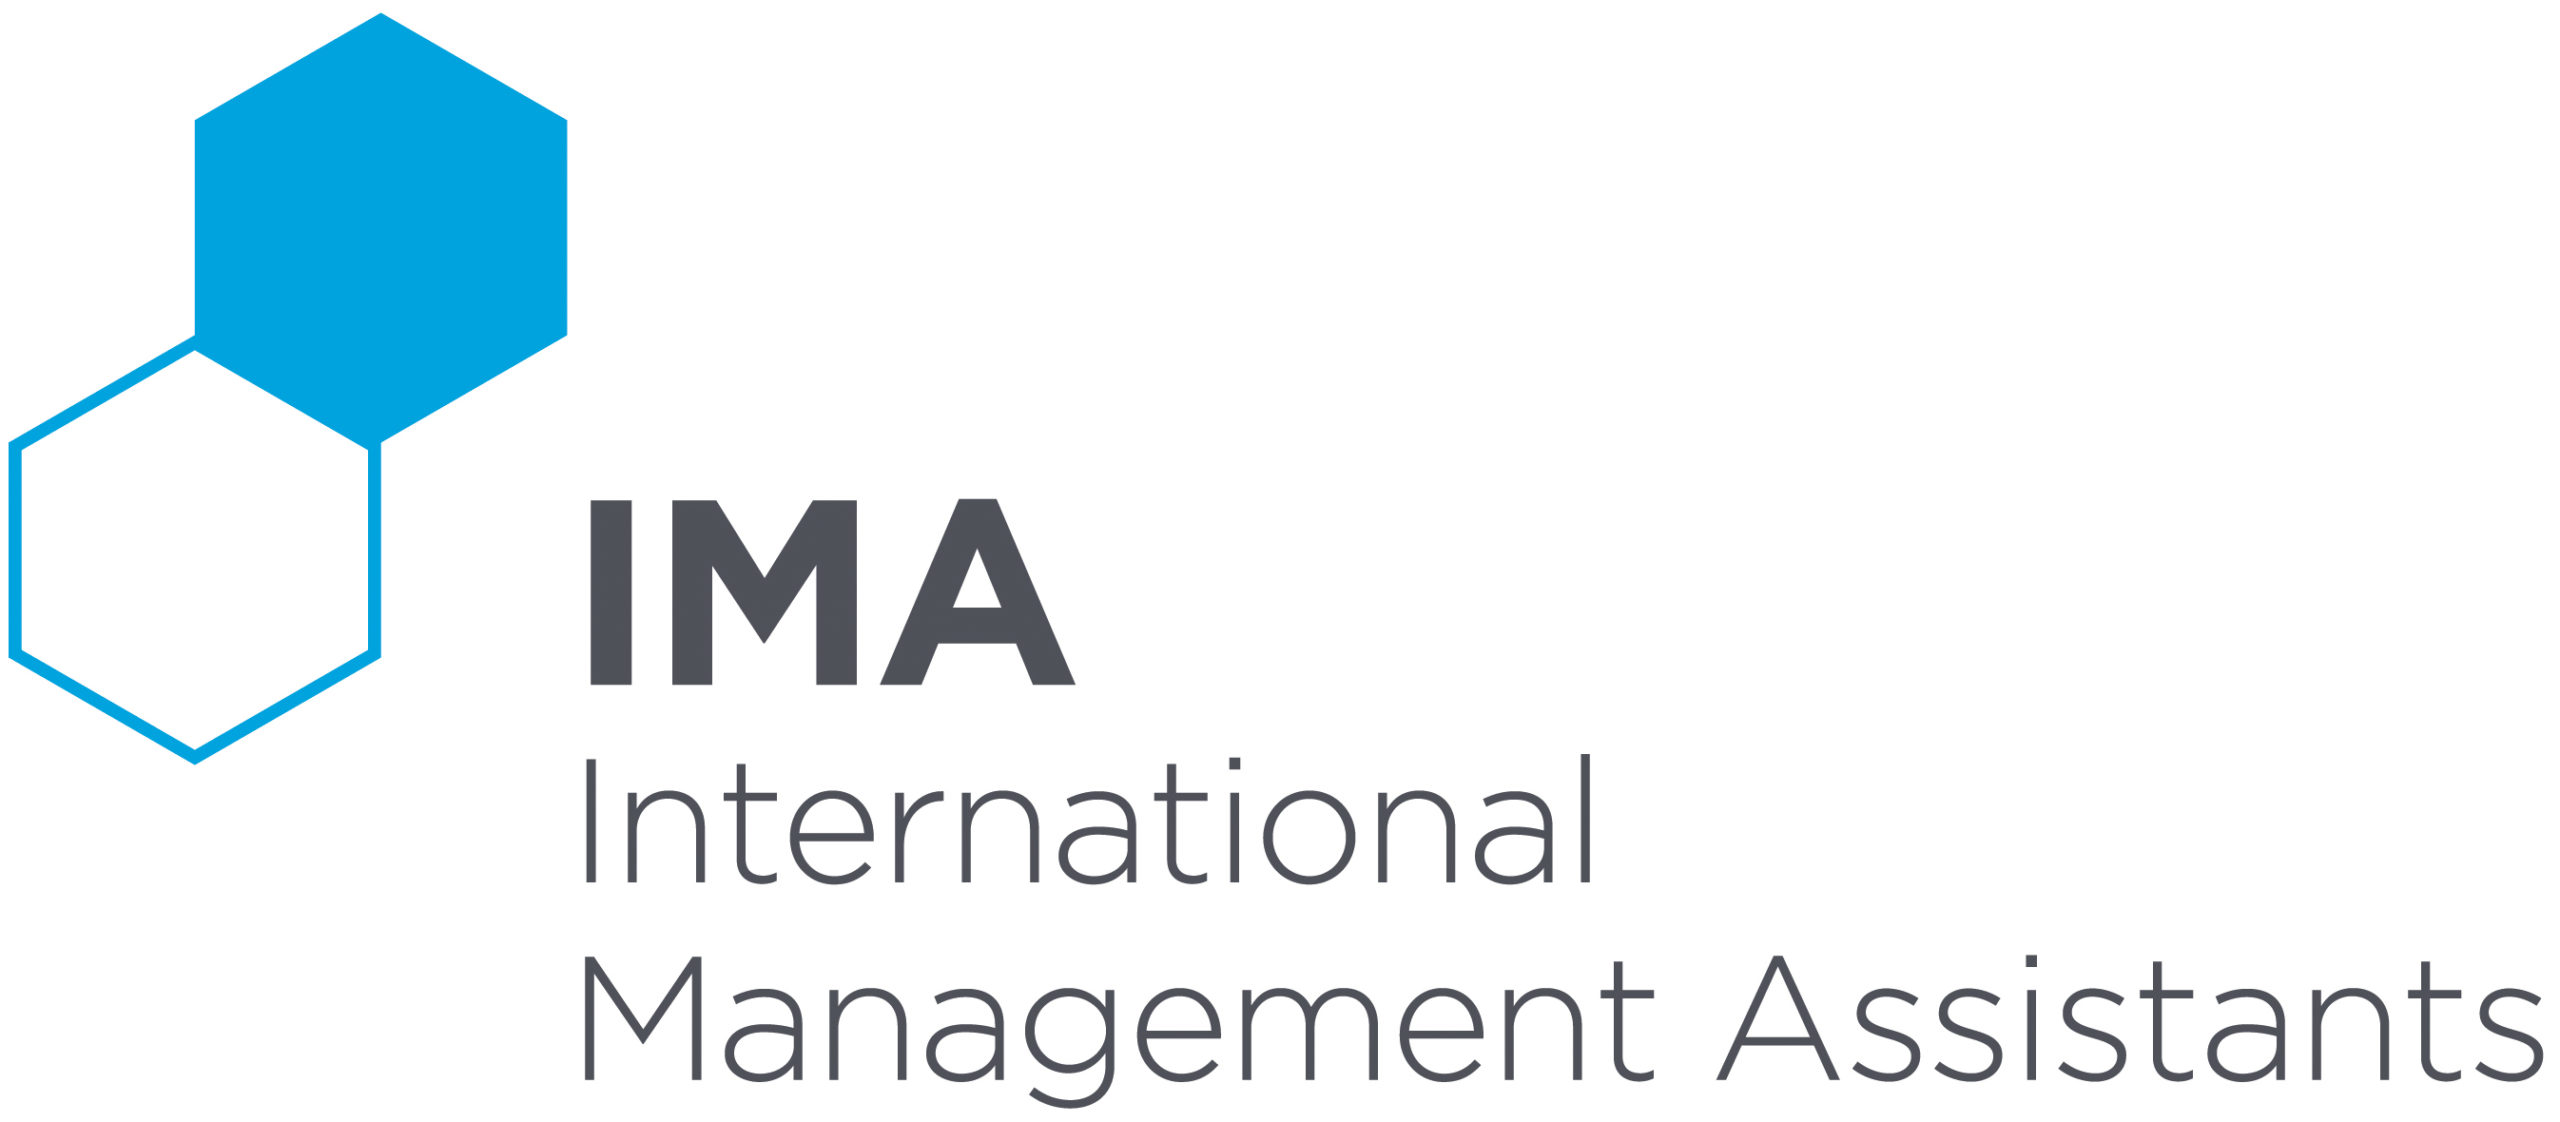 IMA - International Management Assistants